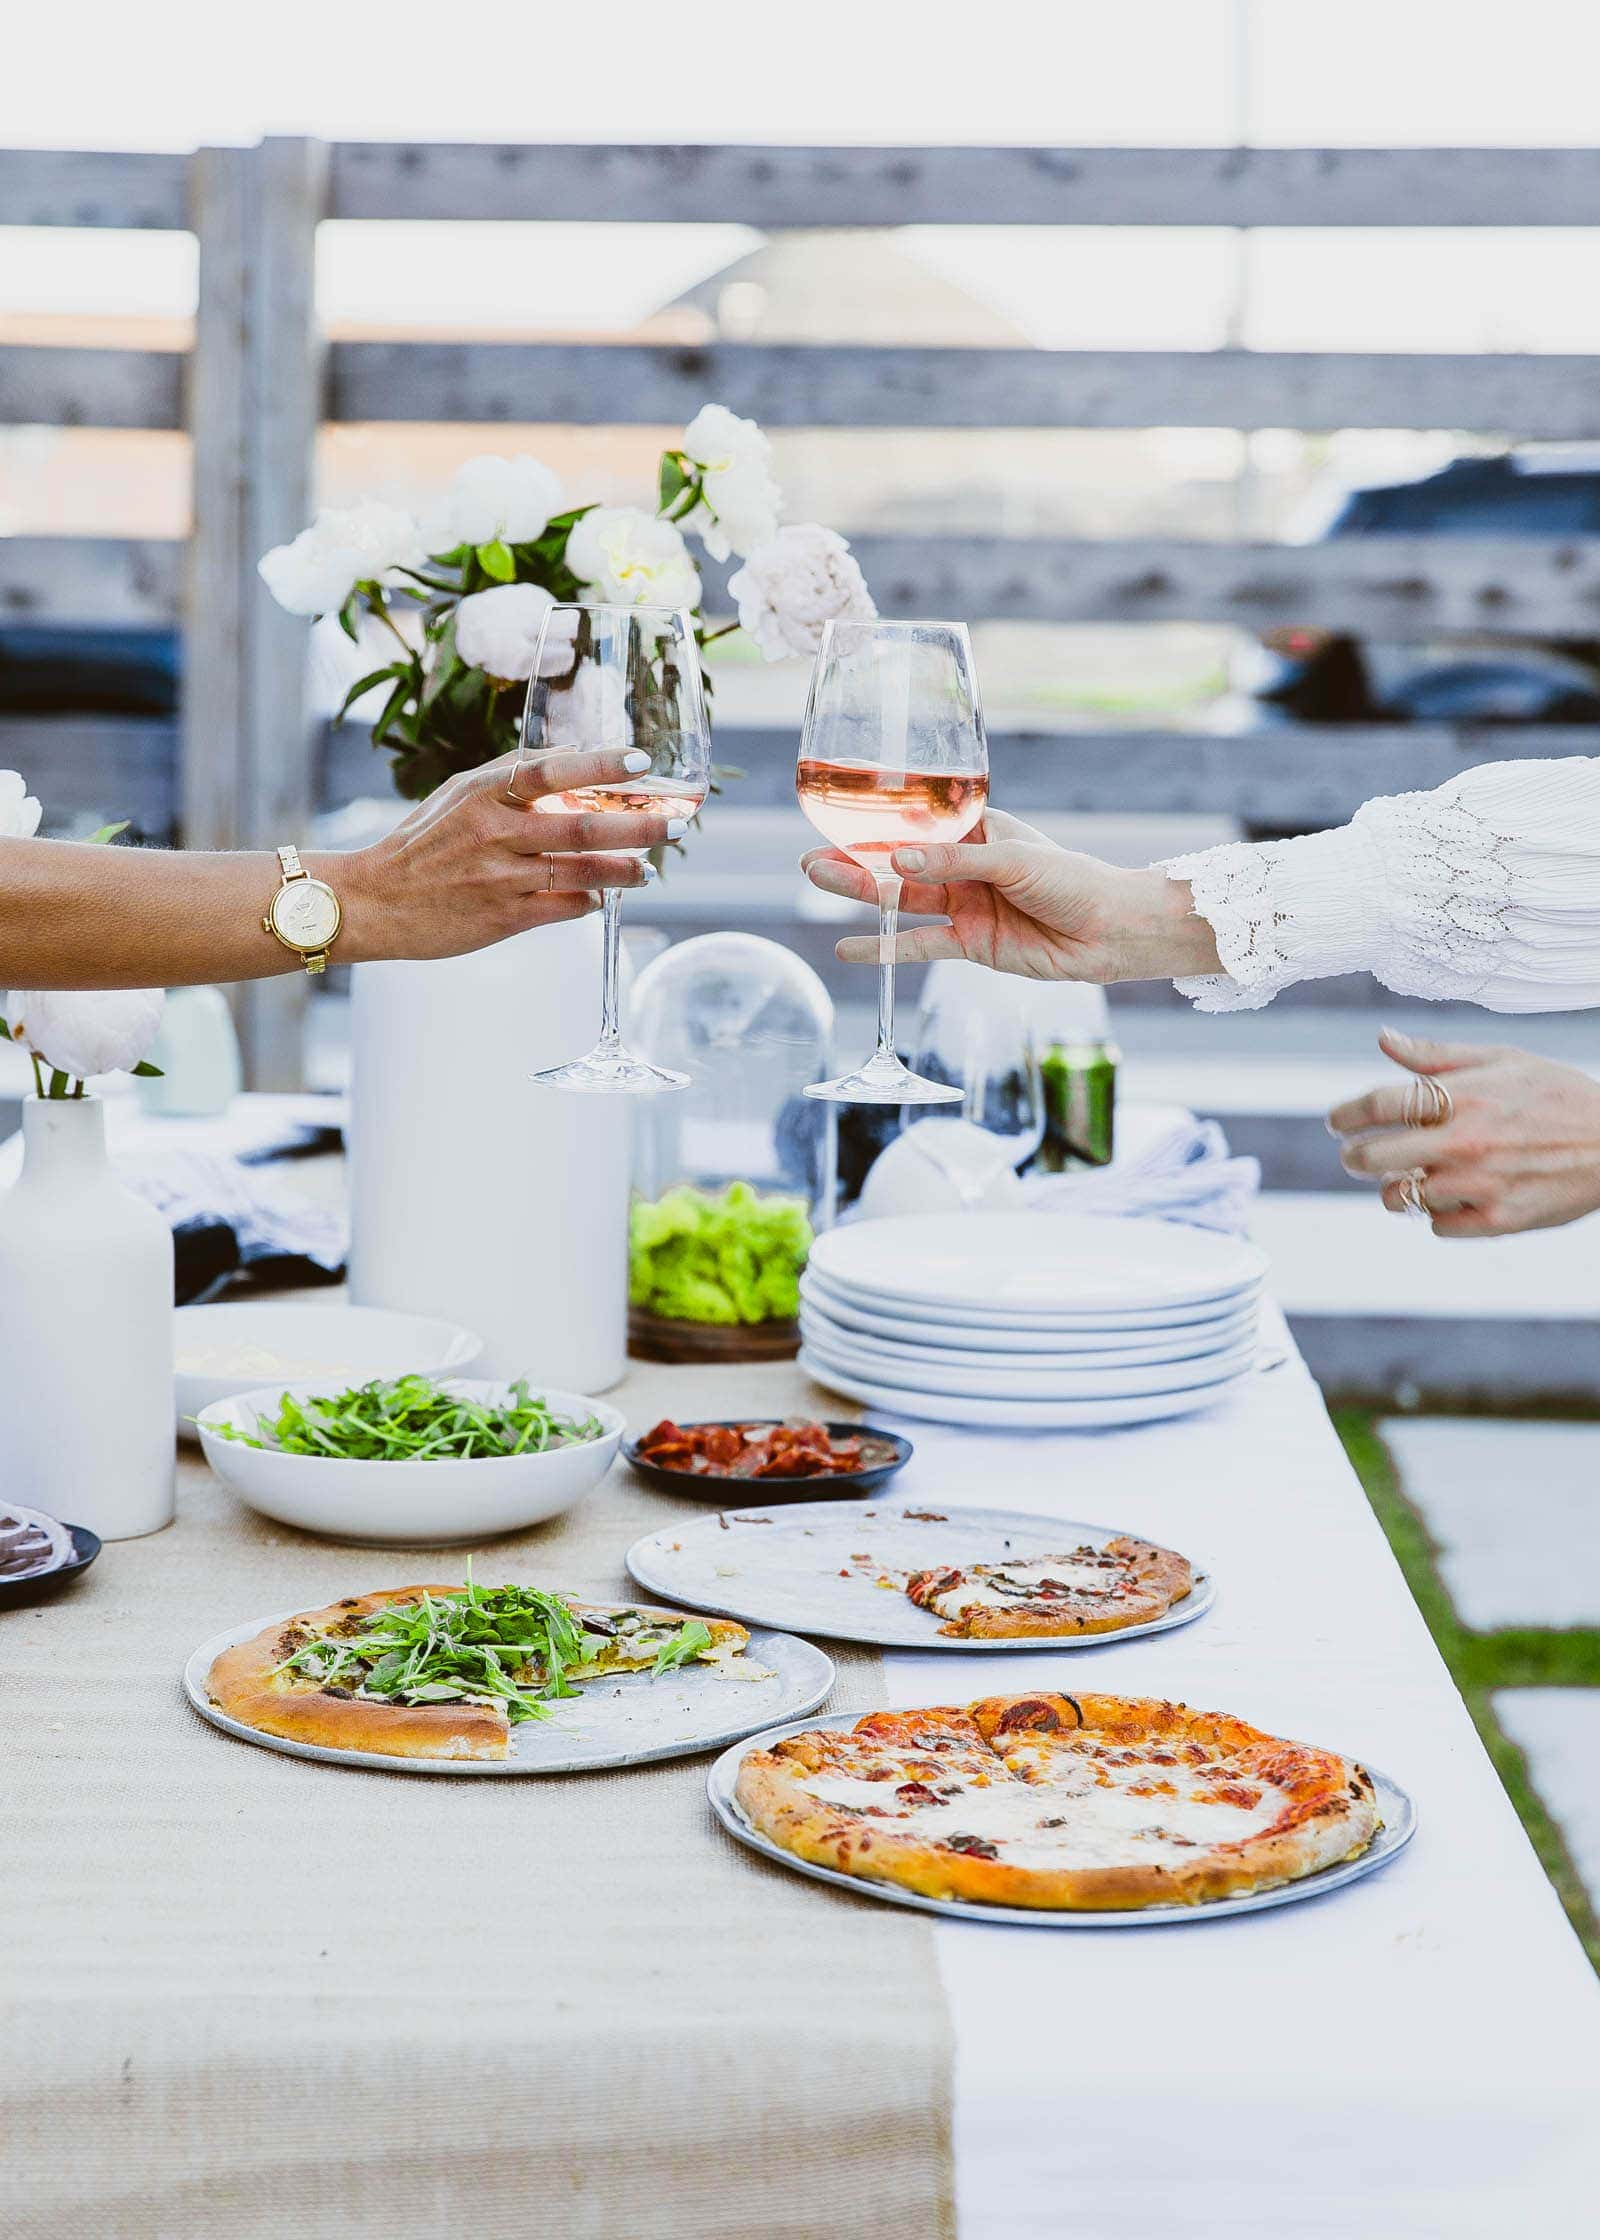 How To Host The Most Epic Pizza Party. Less than 1 hour of prep and you've got yourself a sensational spread that will excite everyone!